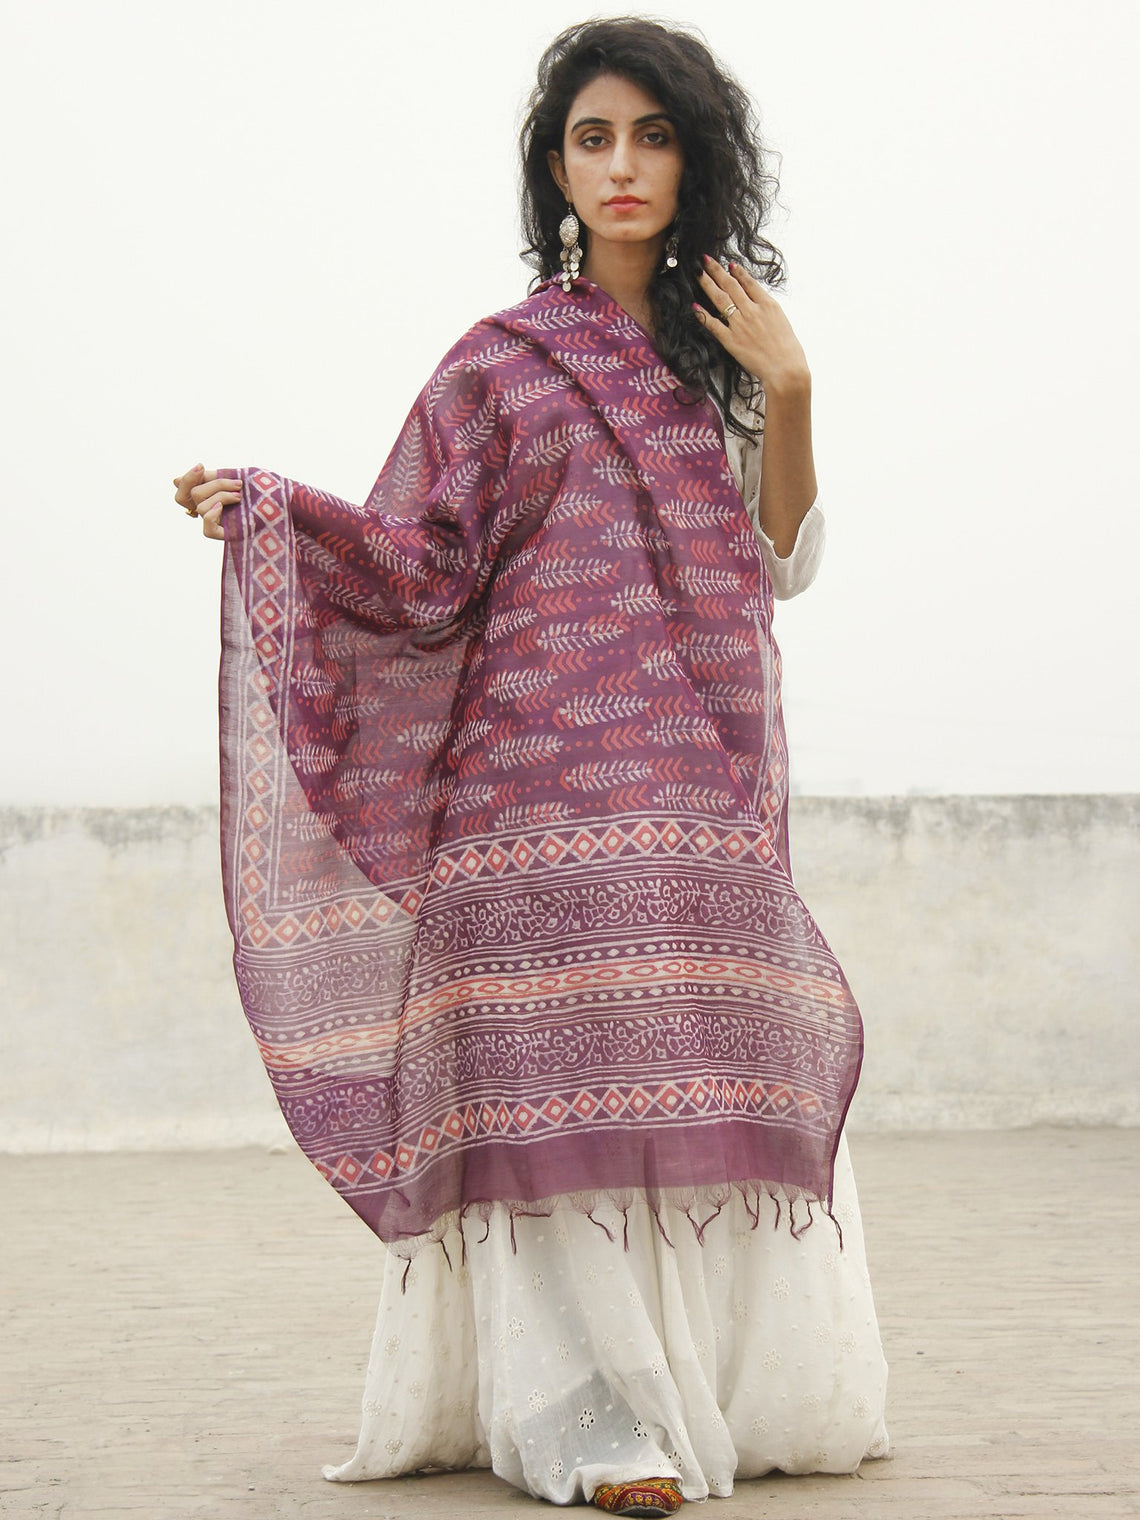 Dark Onion Pink Red Ivory Chanderi Hand Black Printed & Hand Painted Dupatta - D04170224